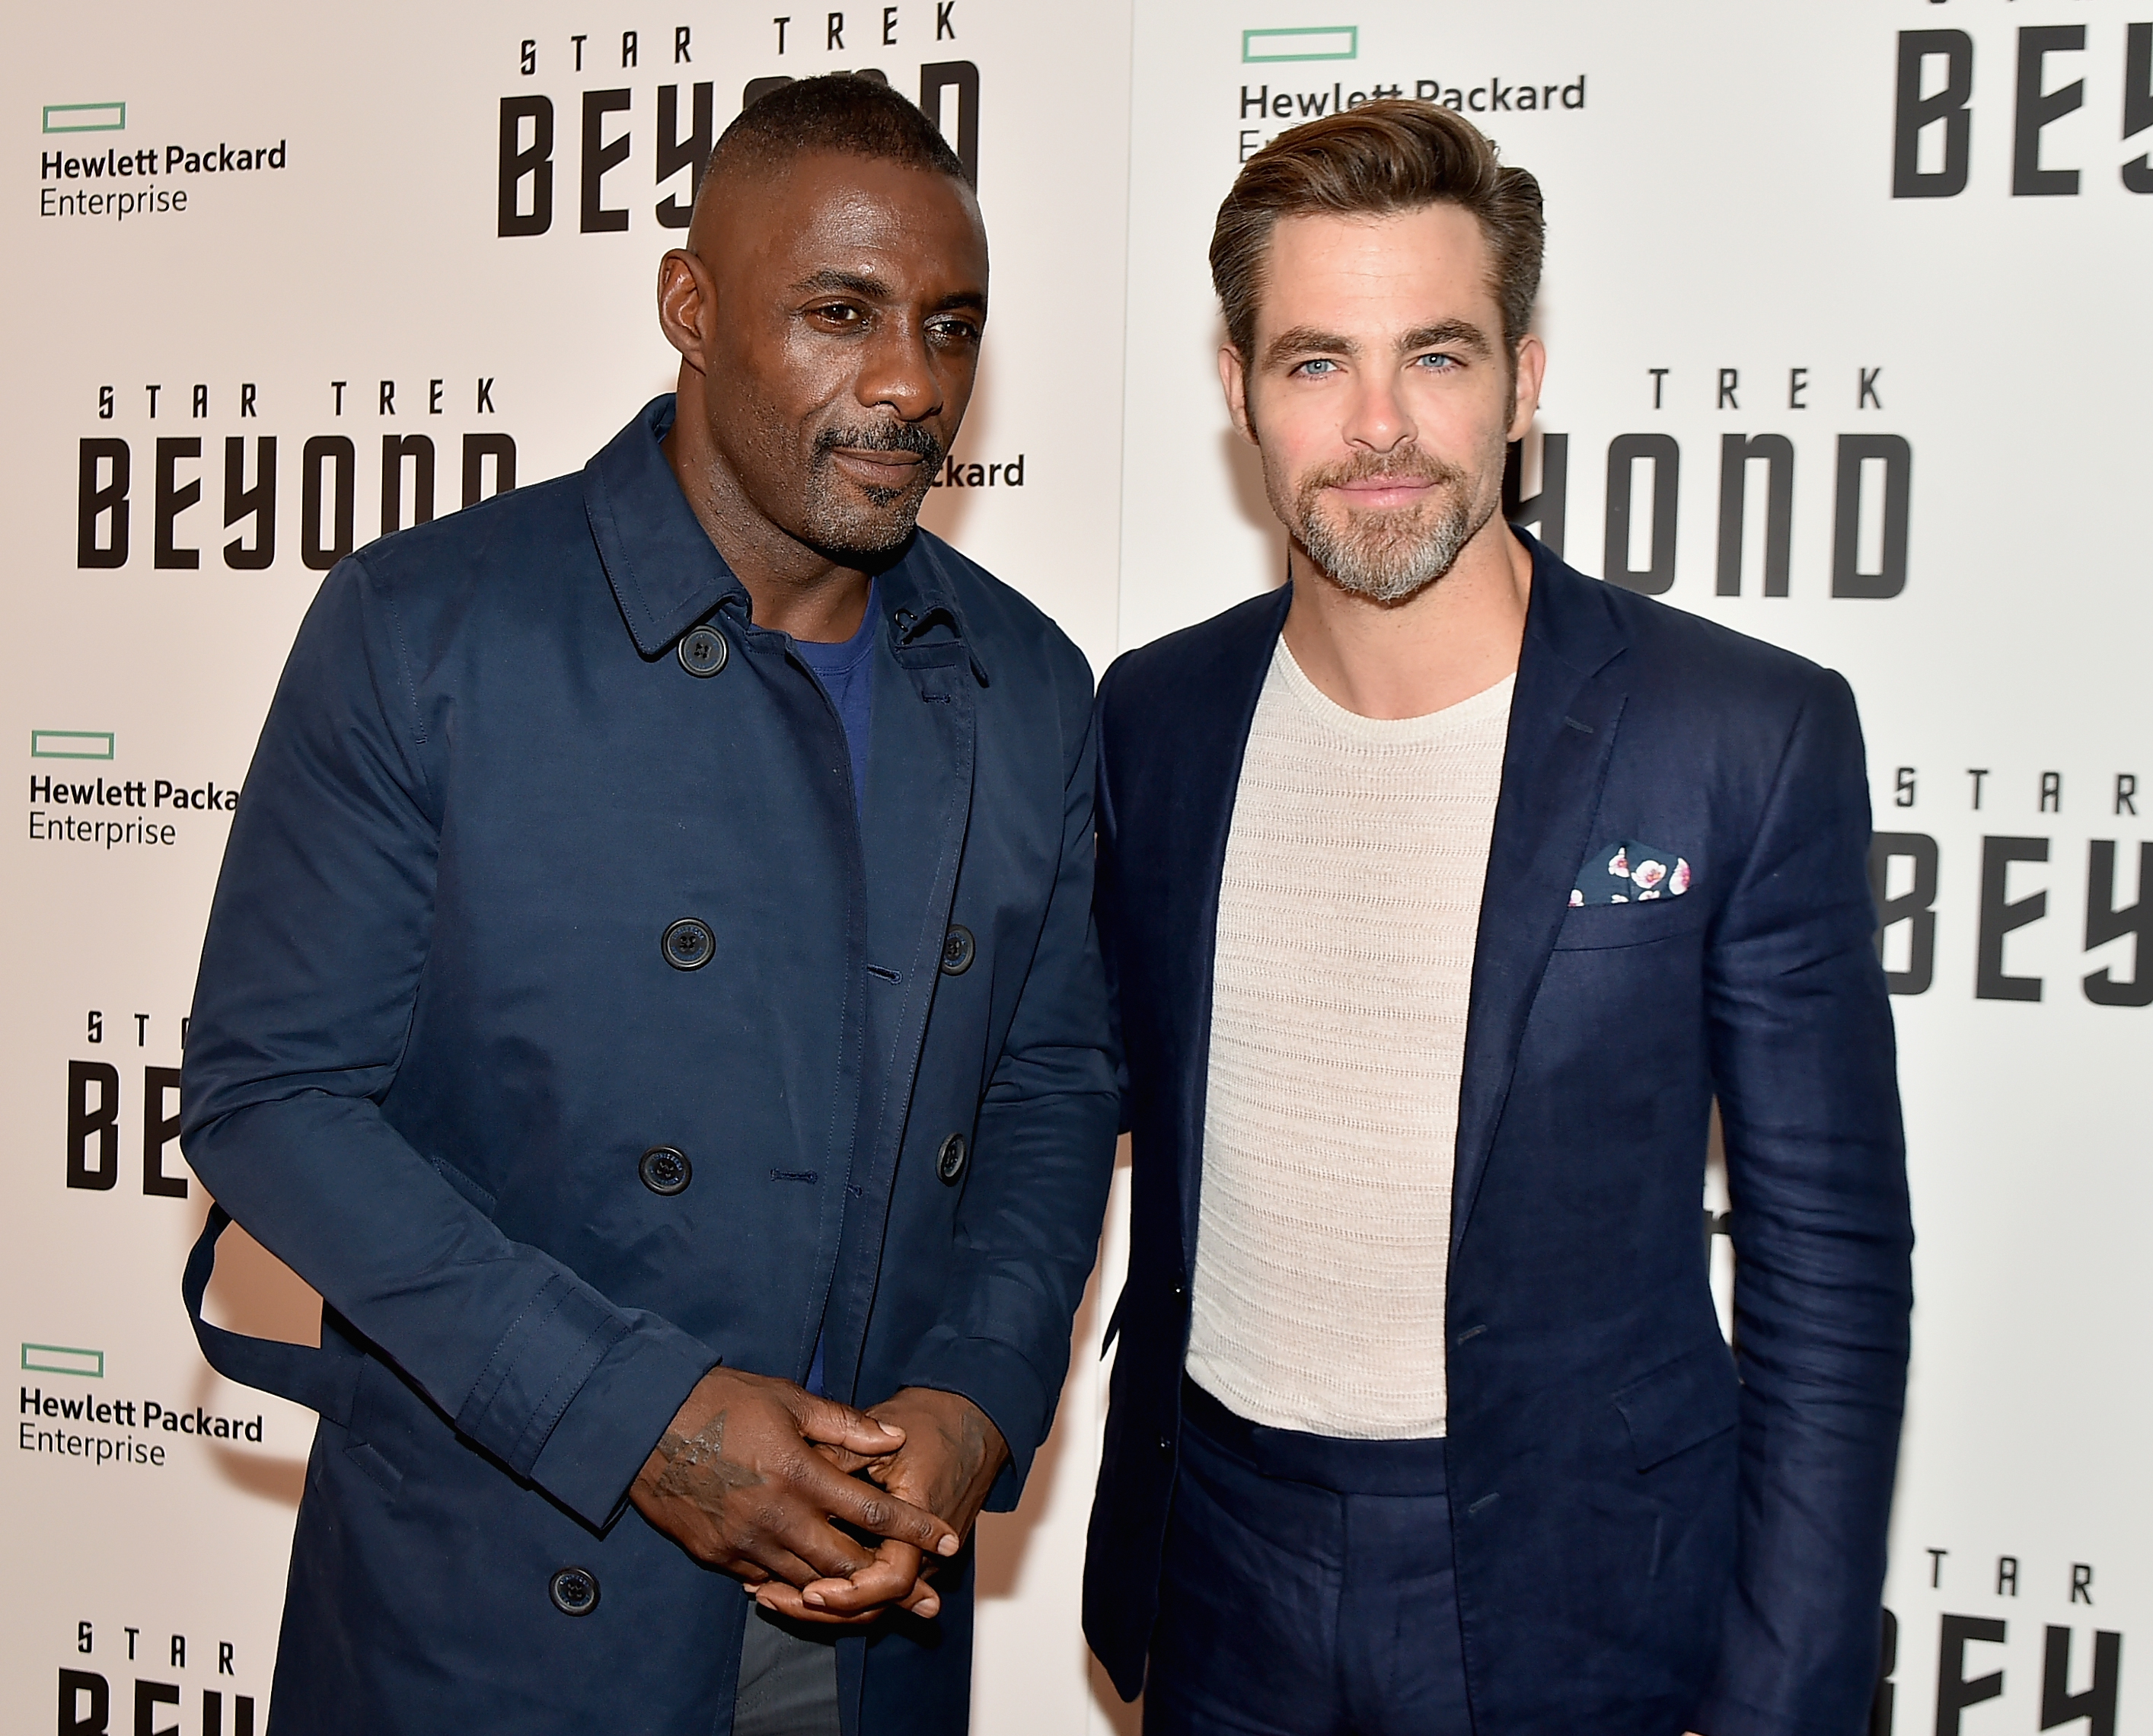 NEW YORK, NY - JULY 18:  Idris Elba and Chris Pine attend the  Star Trek Beyond  New York Premiere at Crosby Street Hotel on July 18, 2016 in New York City.  (Photo by Theo Wargo/Getty Images)